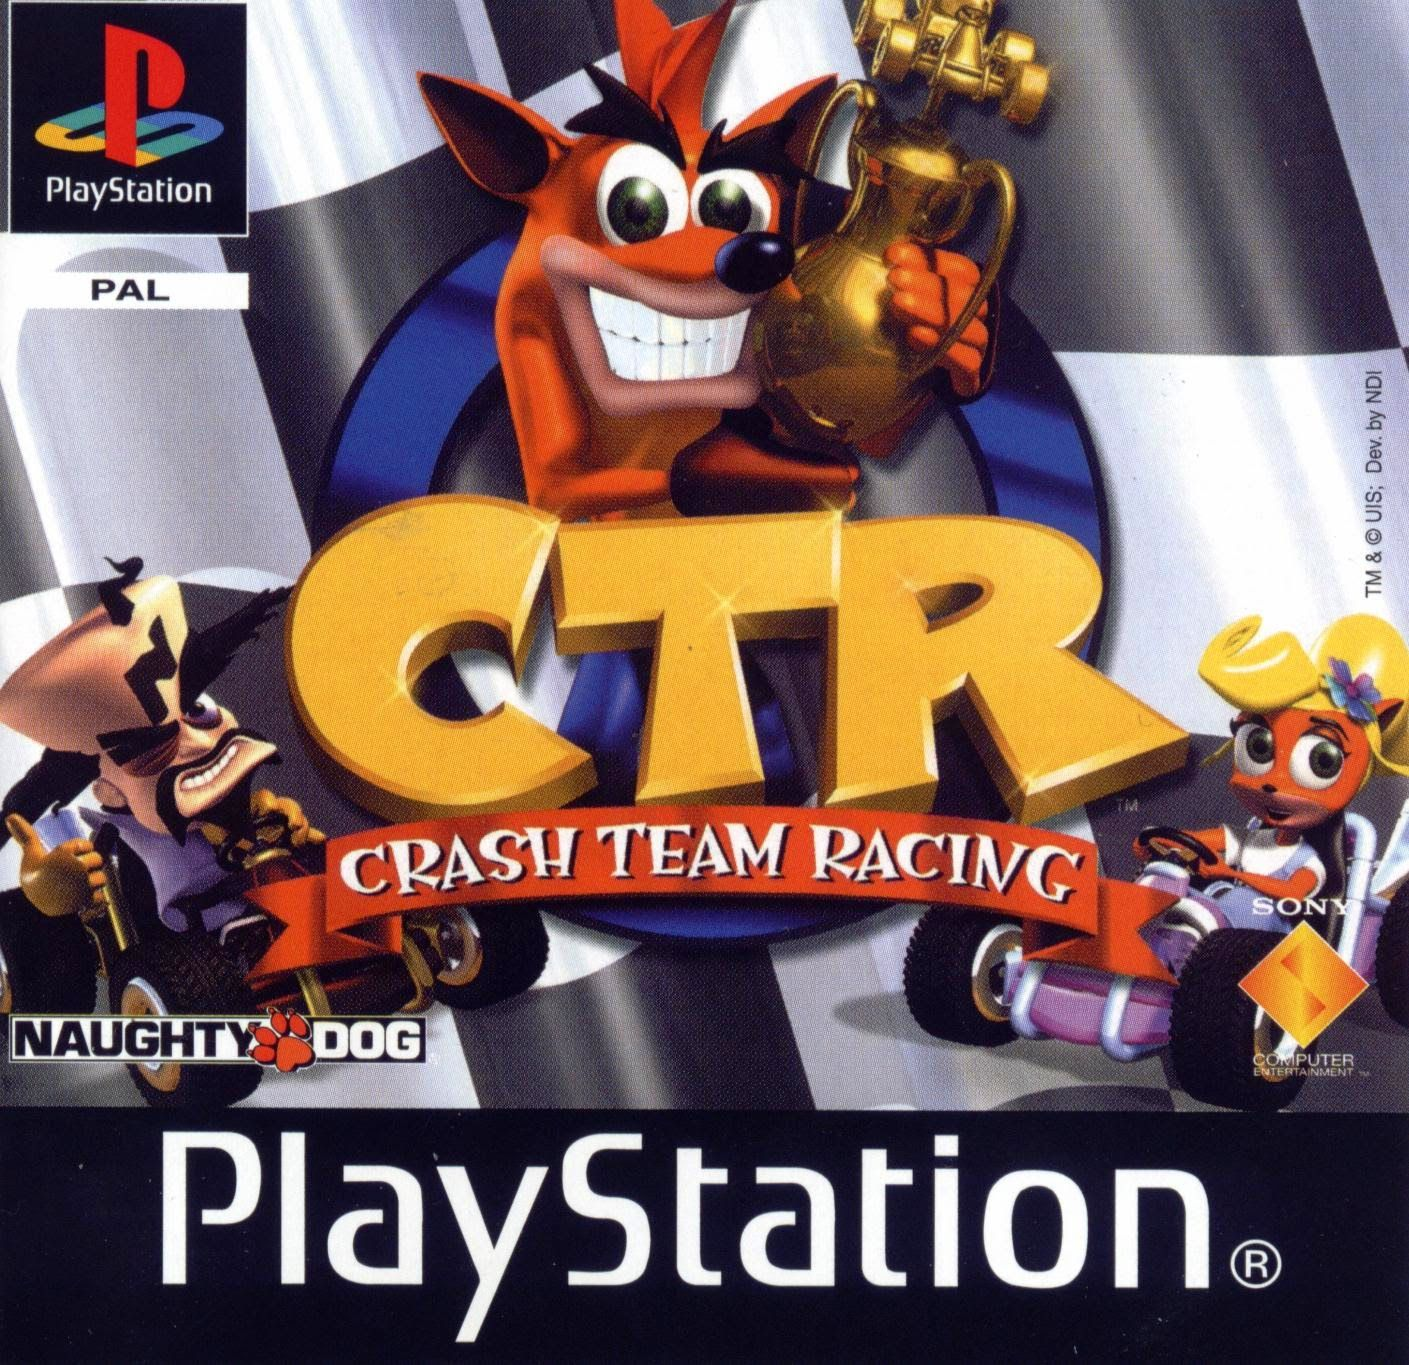 Download Ctr Crash Team Racing Iso Game Ps 1 Psx Download